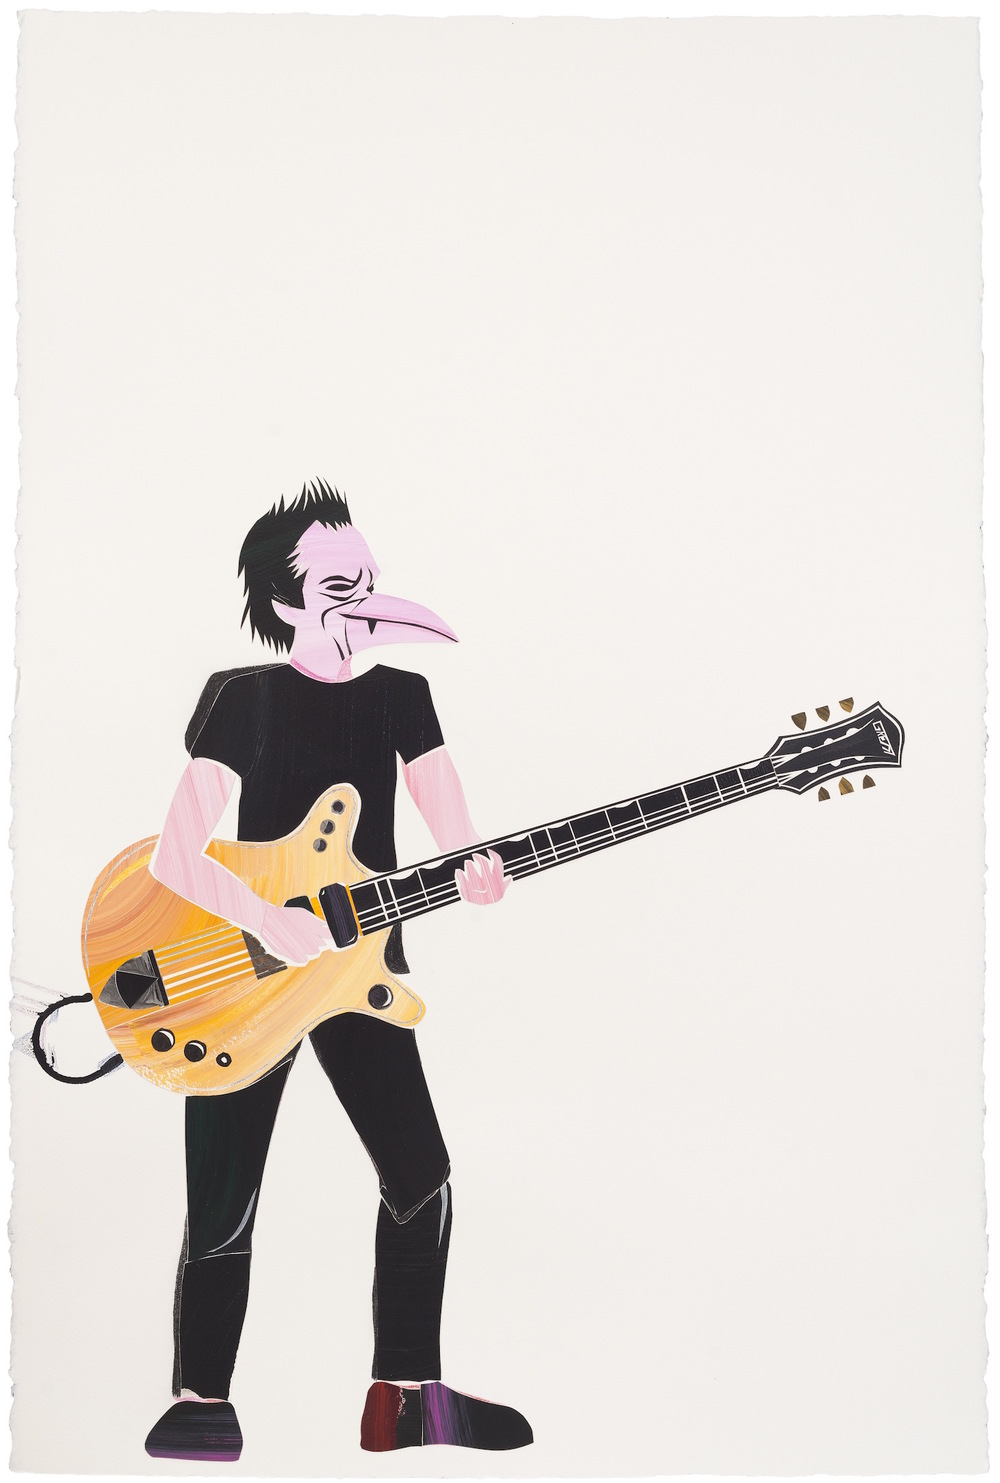 Stevie Young AC/DC 2015. Oil on paper, 160 x 120 cm